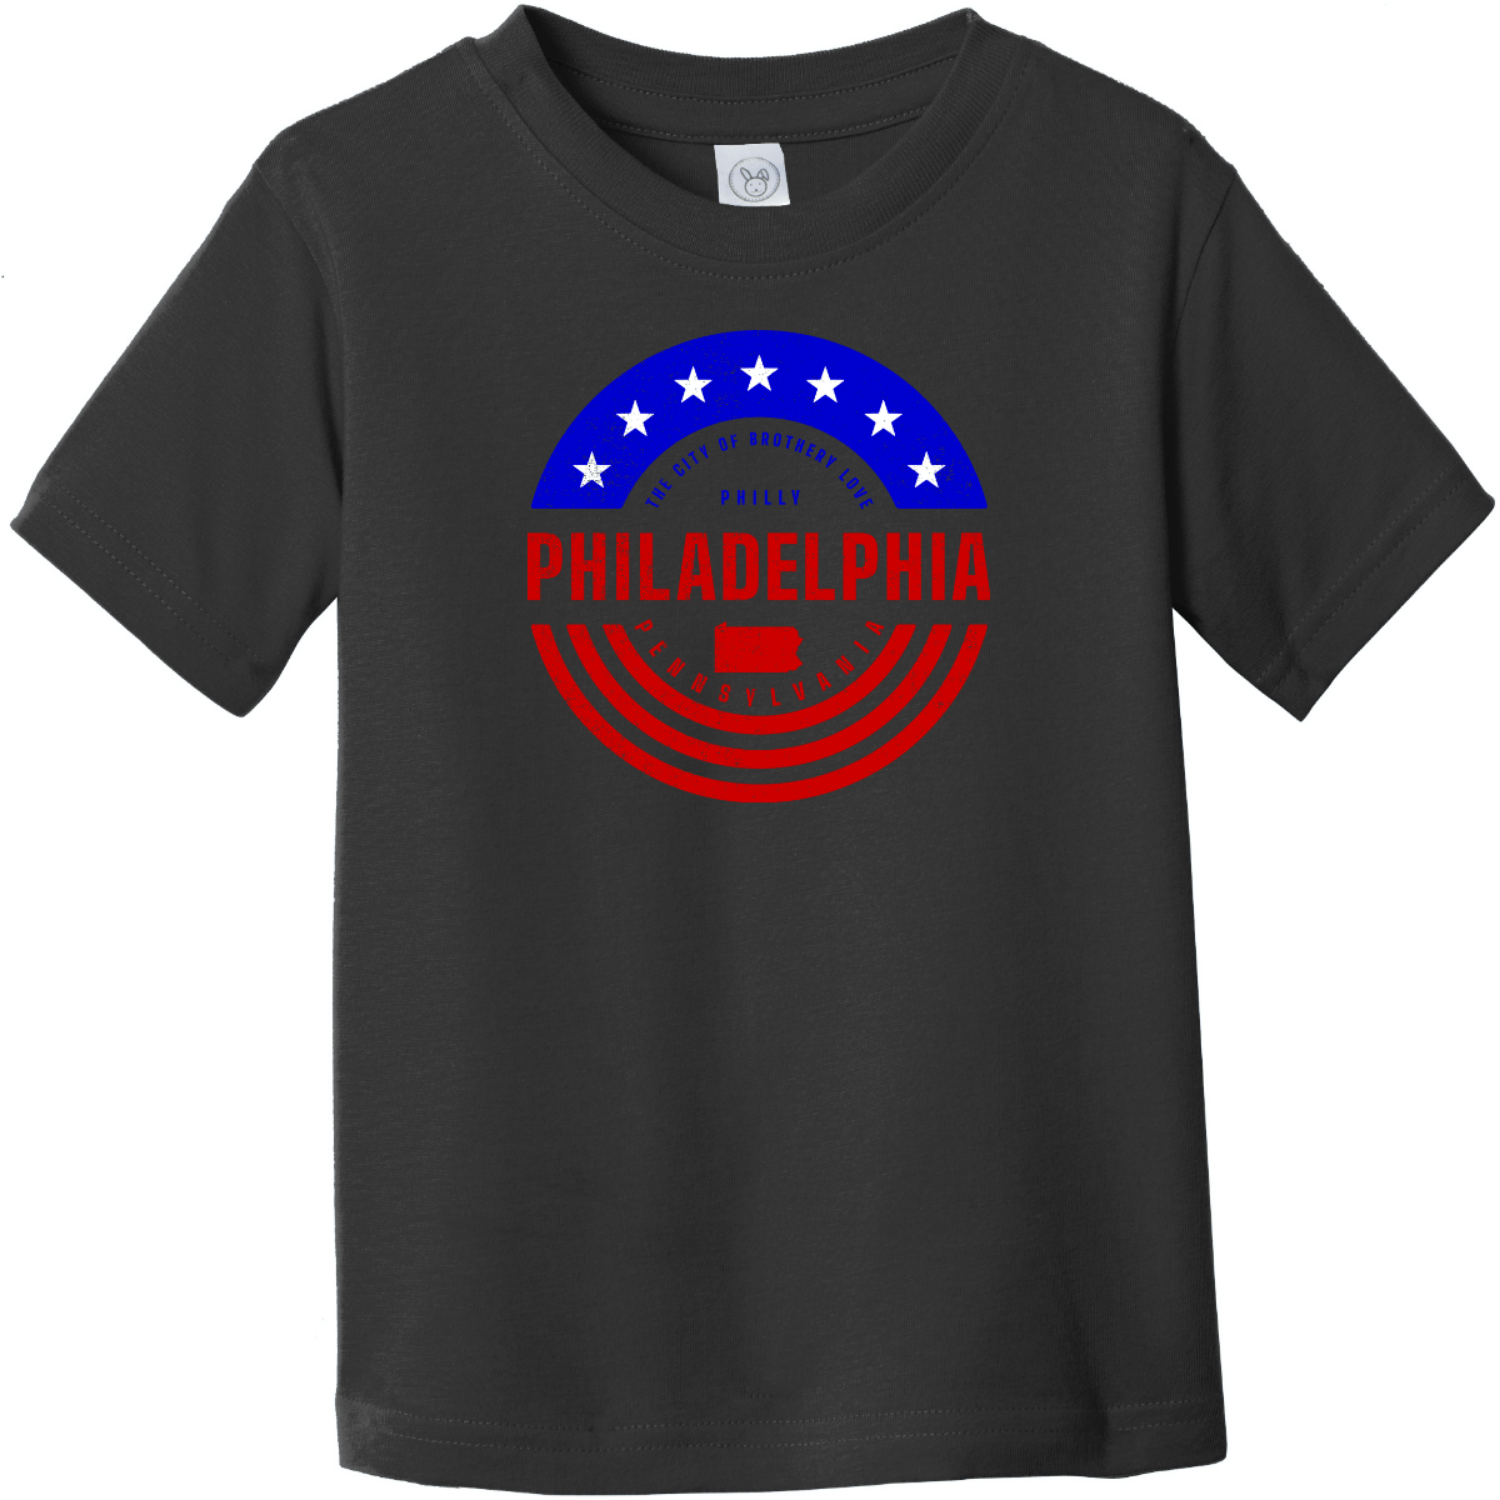 Philadelphia Pennsylvania Patriotic Toddler T-Shirt Black Rabbit Skins Toddler Fine Jersey Tee RS3321